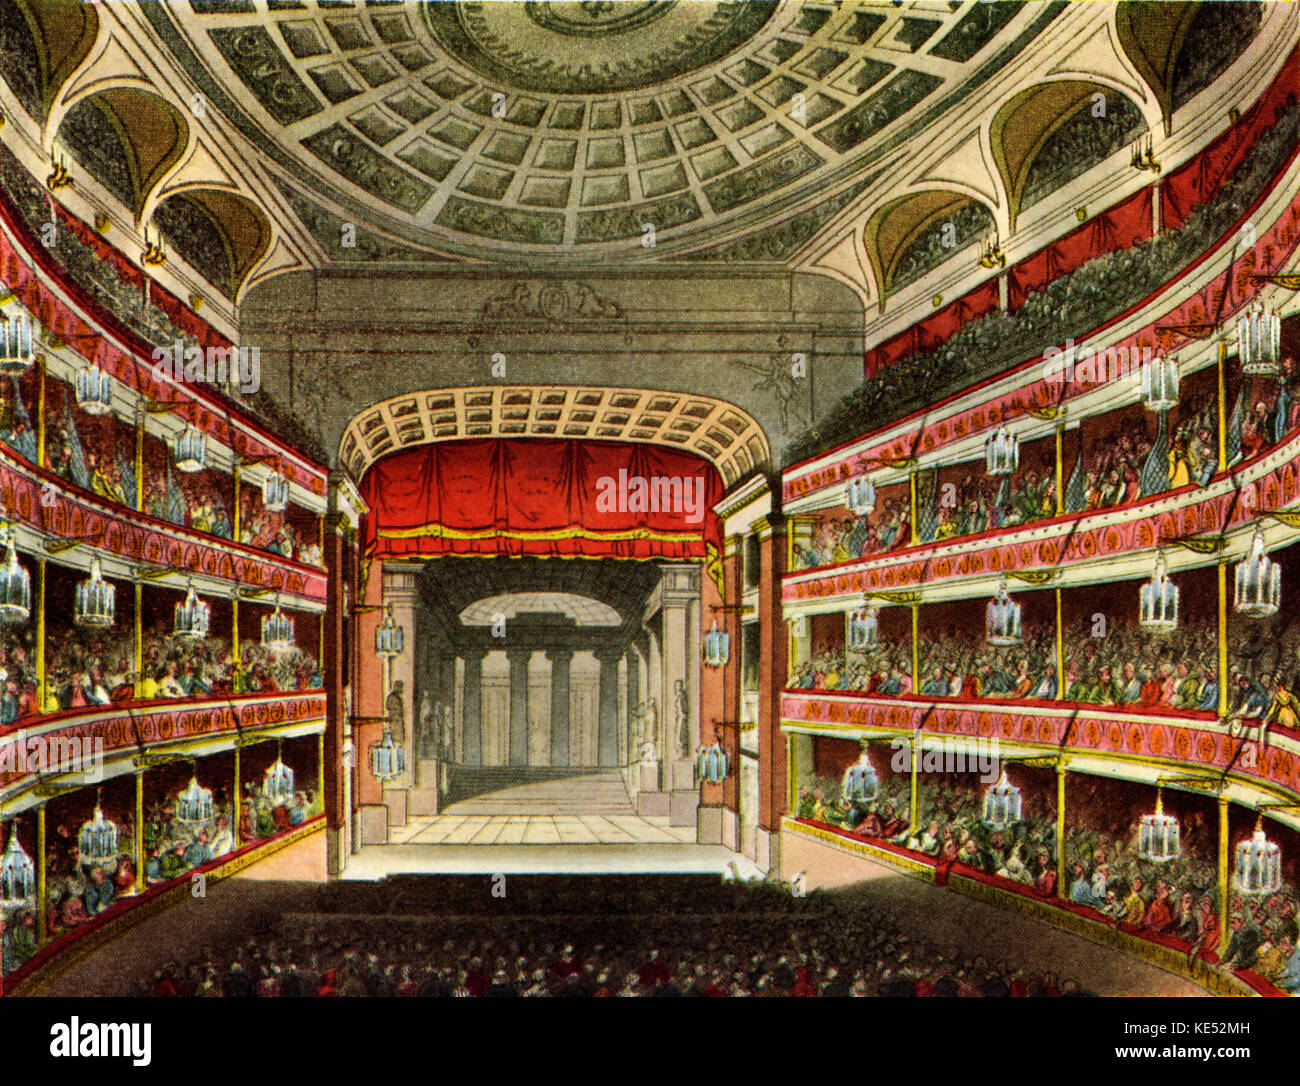 Royal Opera House Covent Garden Interior Stock Photos & Royal Opera ...